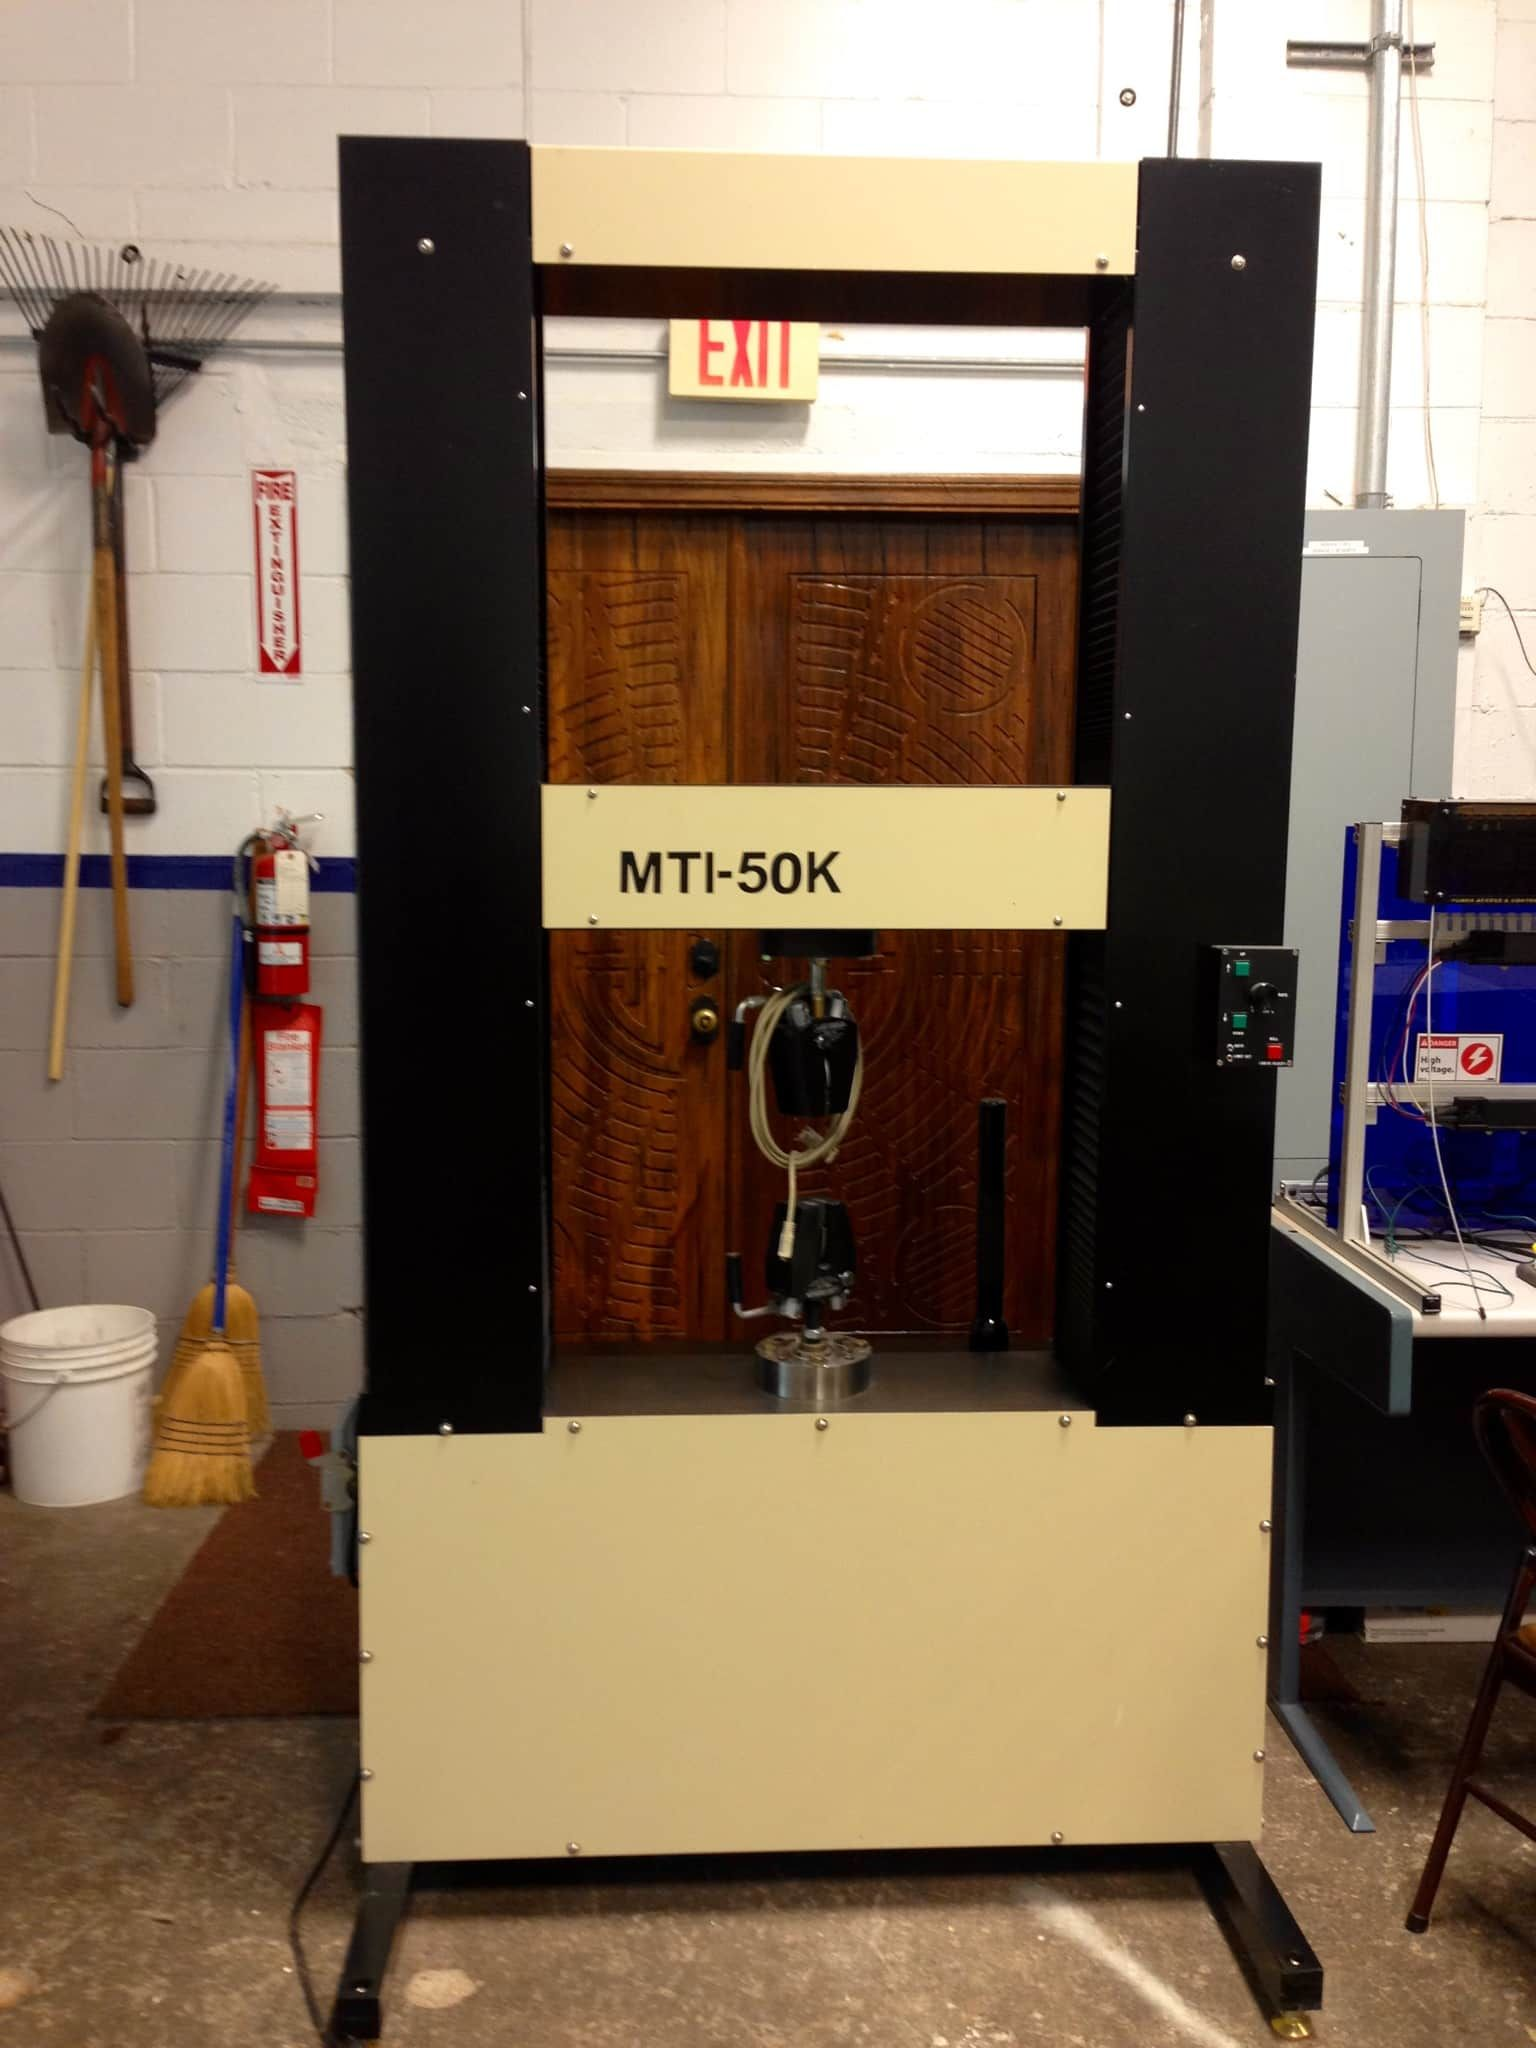 UNIVERSAL TESTING MACHINE (UTM) - Rarely Used, High Capacity